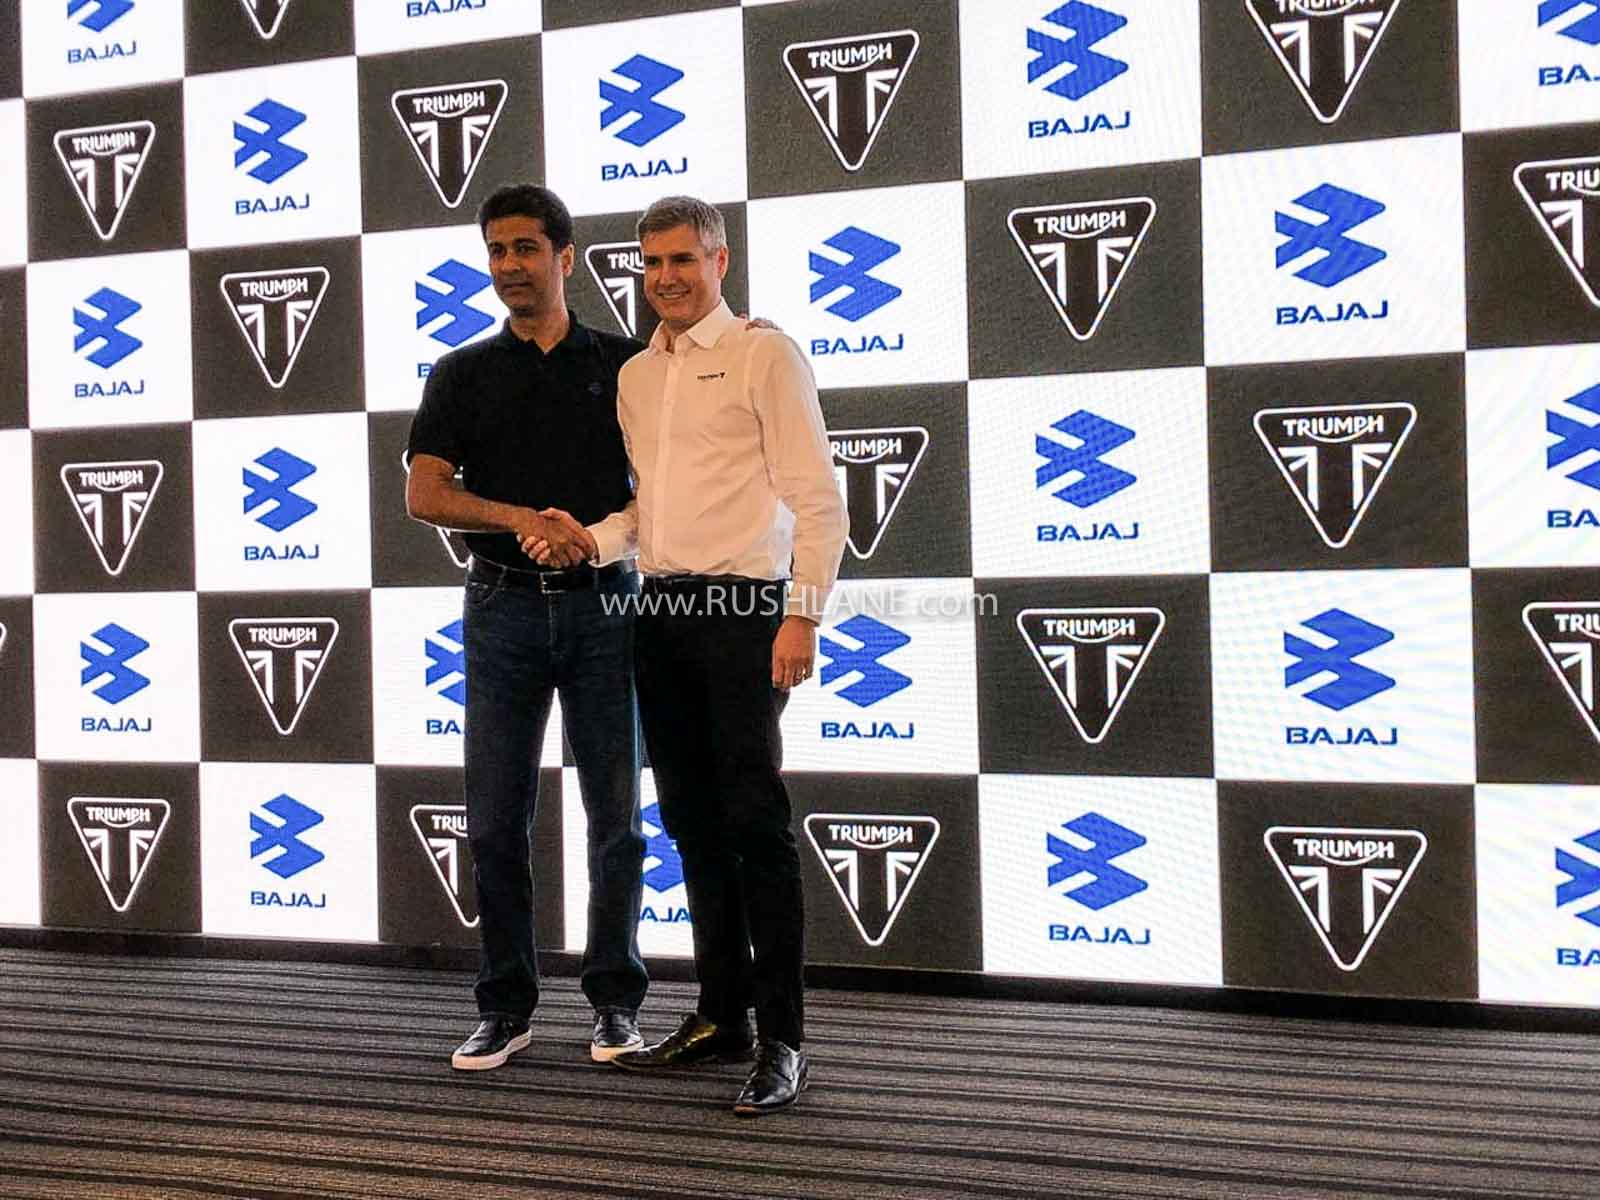 Bajaj Triumph motorcycle launch